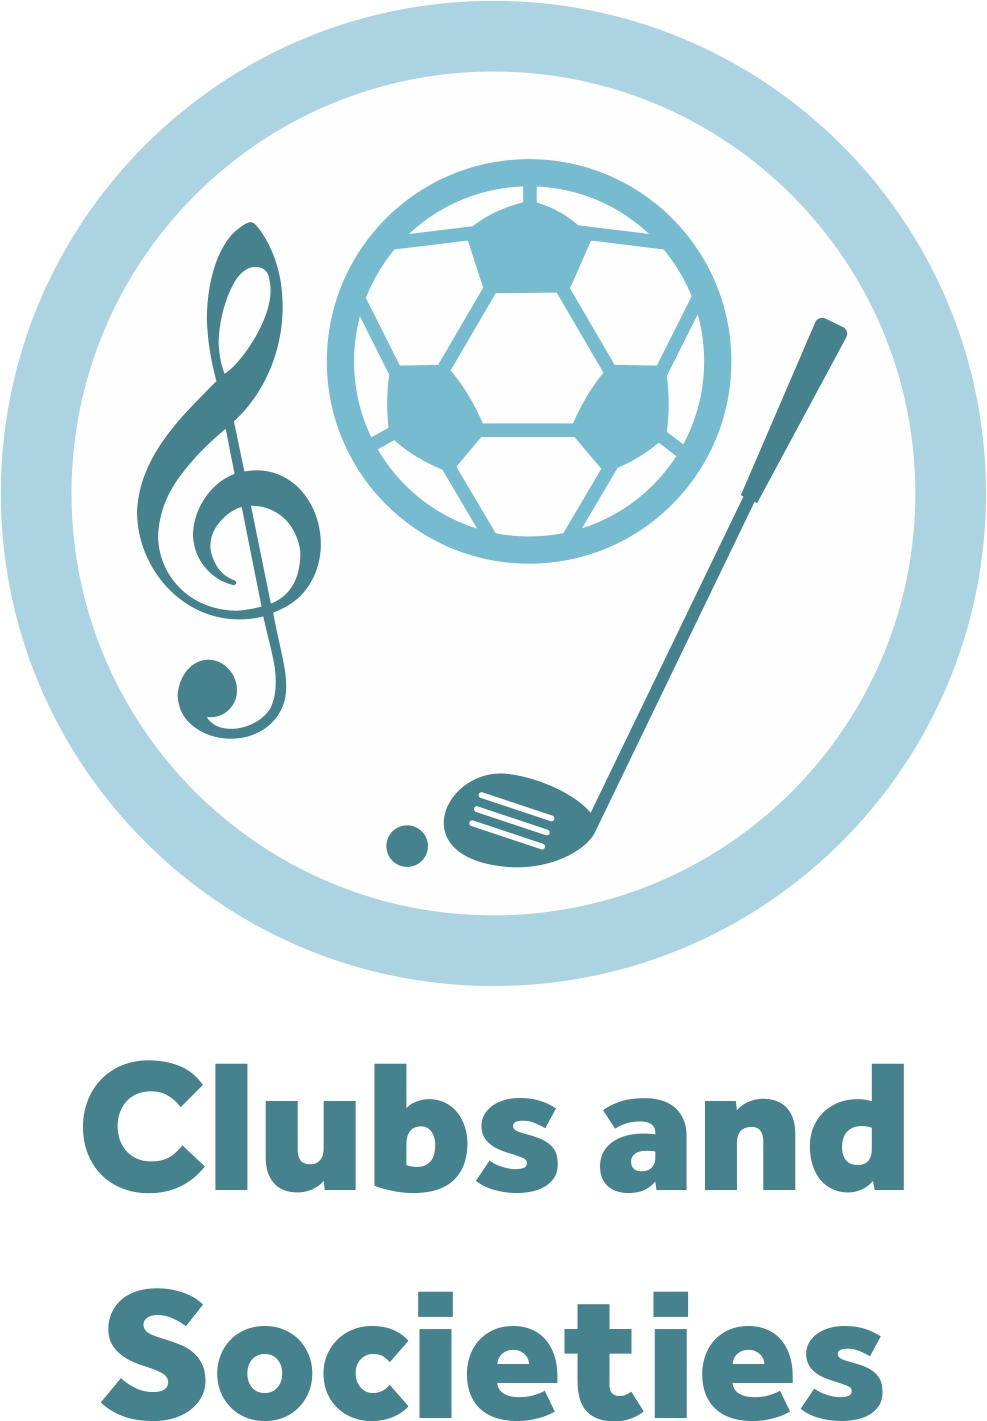 4-clubs-and-societies-icon